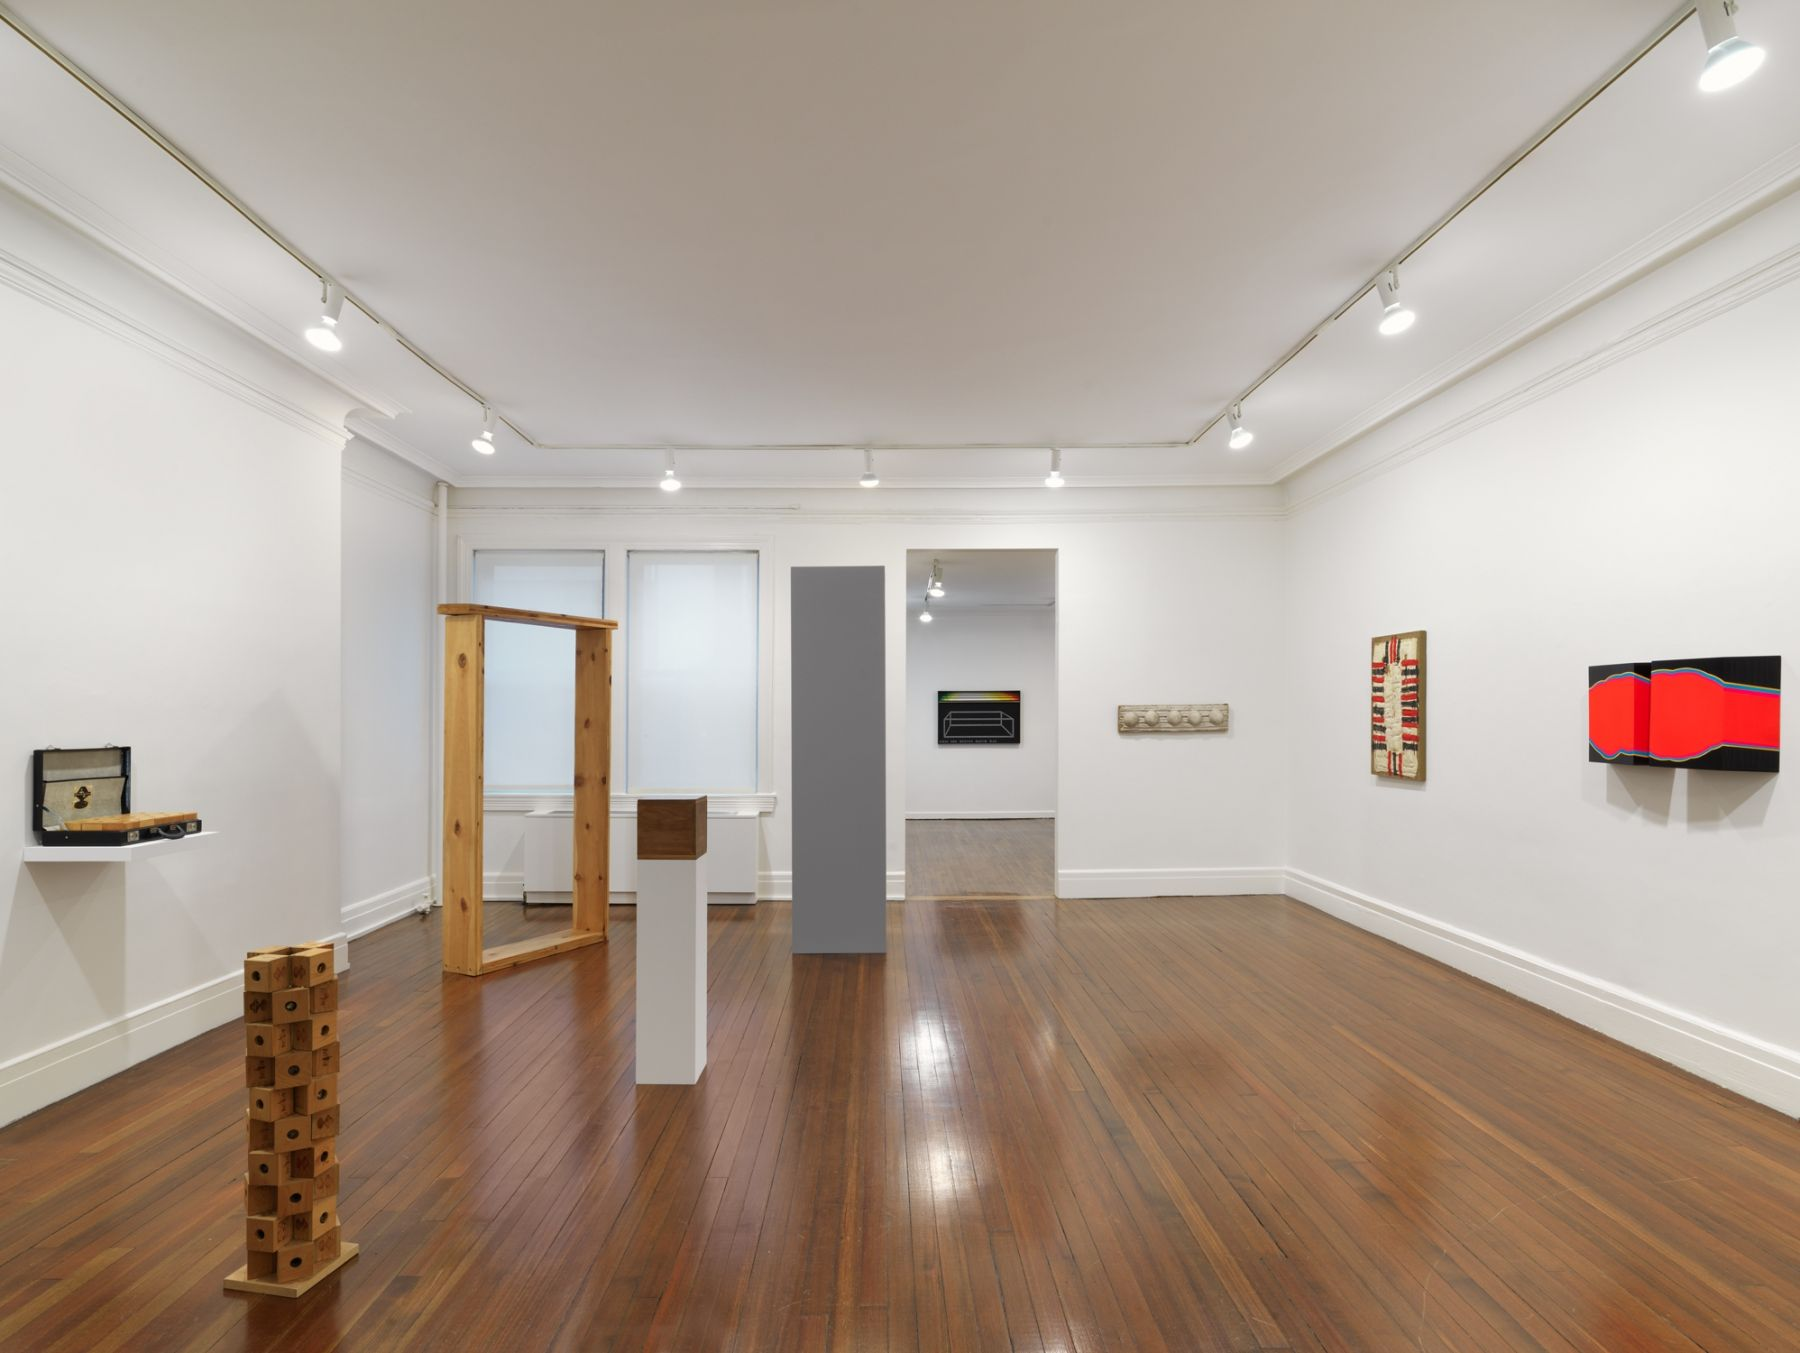 Installation view, 1963—Boxing Match, Revisited, 18 EAST 77